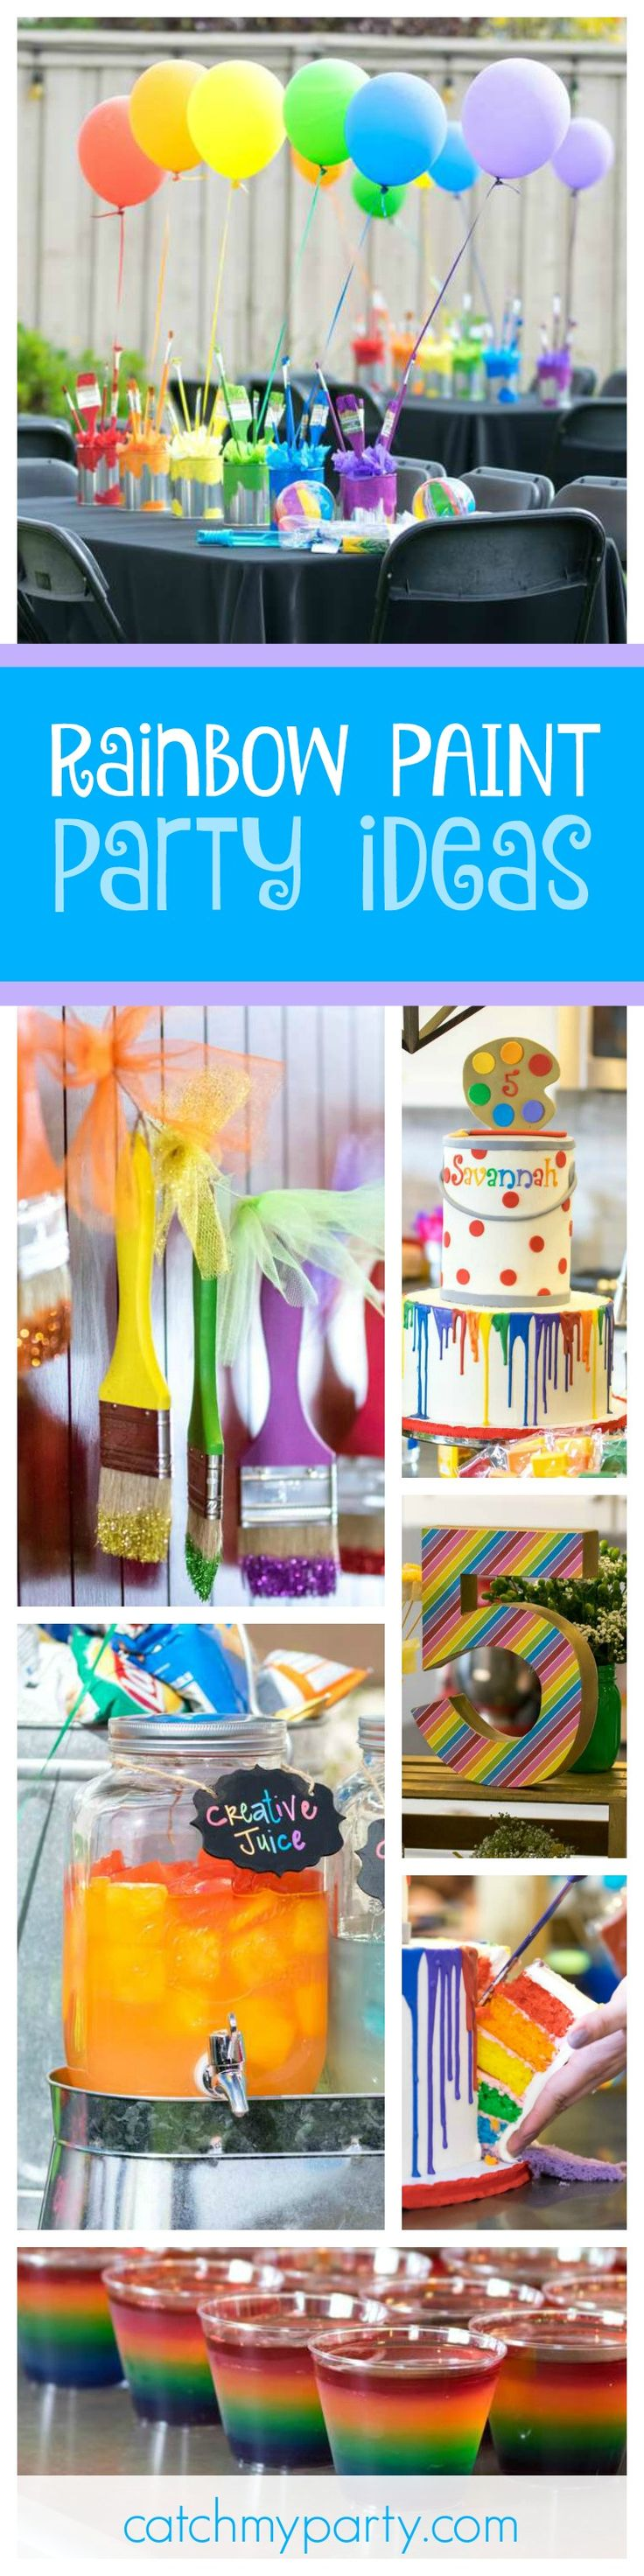 Don't miss this fantastic Rainbow Paint 5th Birthday Party. The table settings are so colorful!! See more party ideas and share yours at CatchMyParty.com